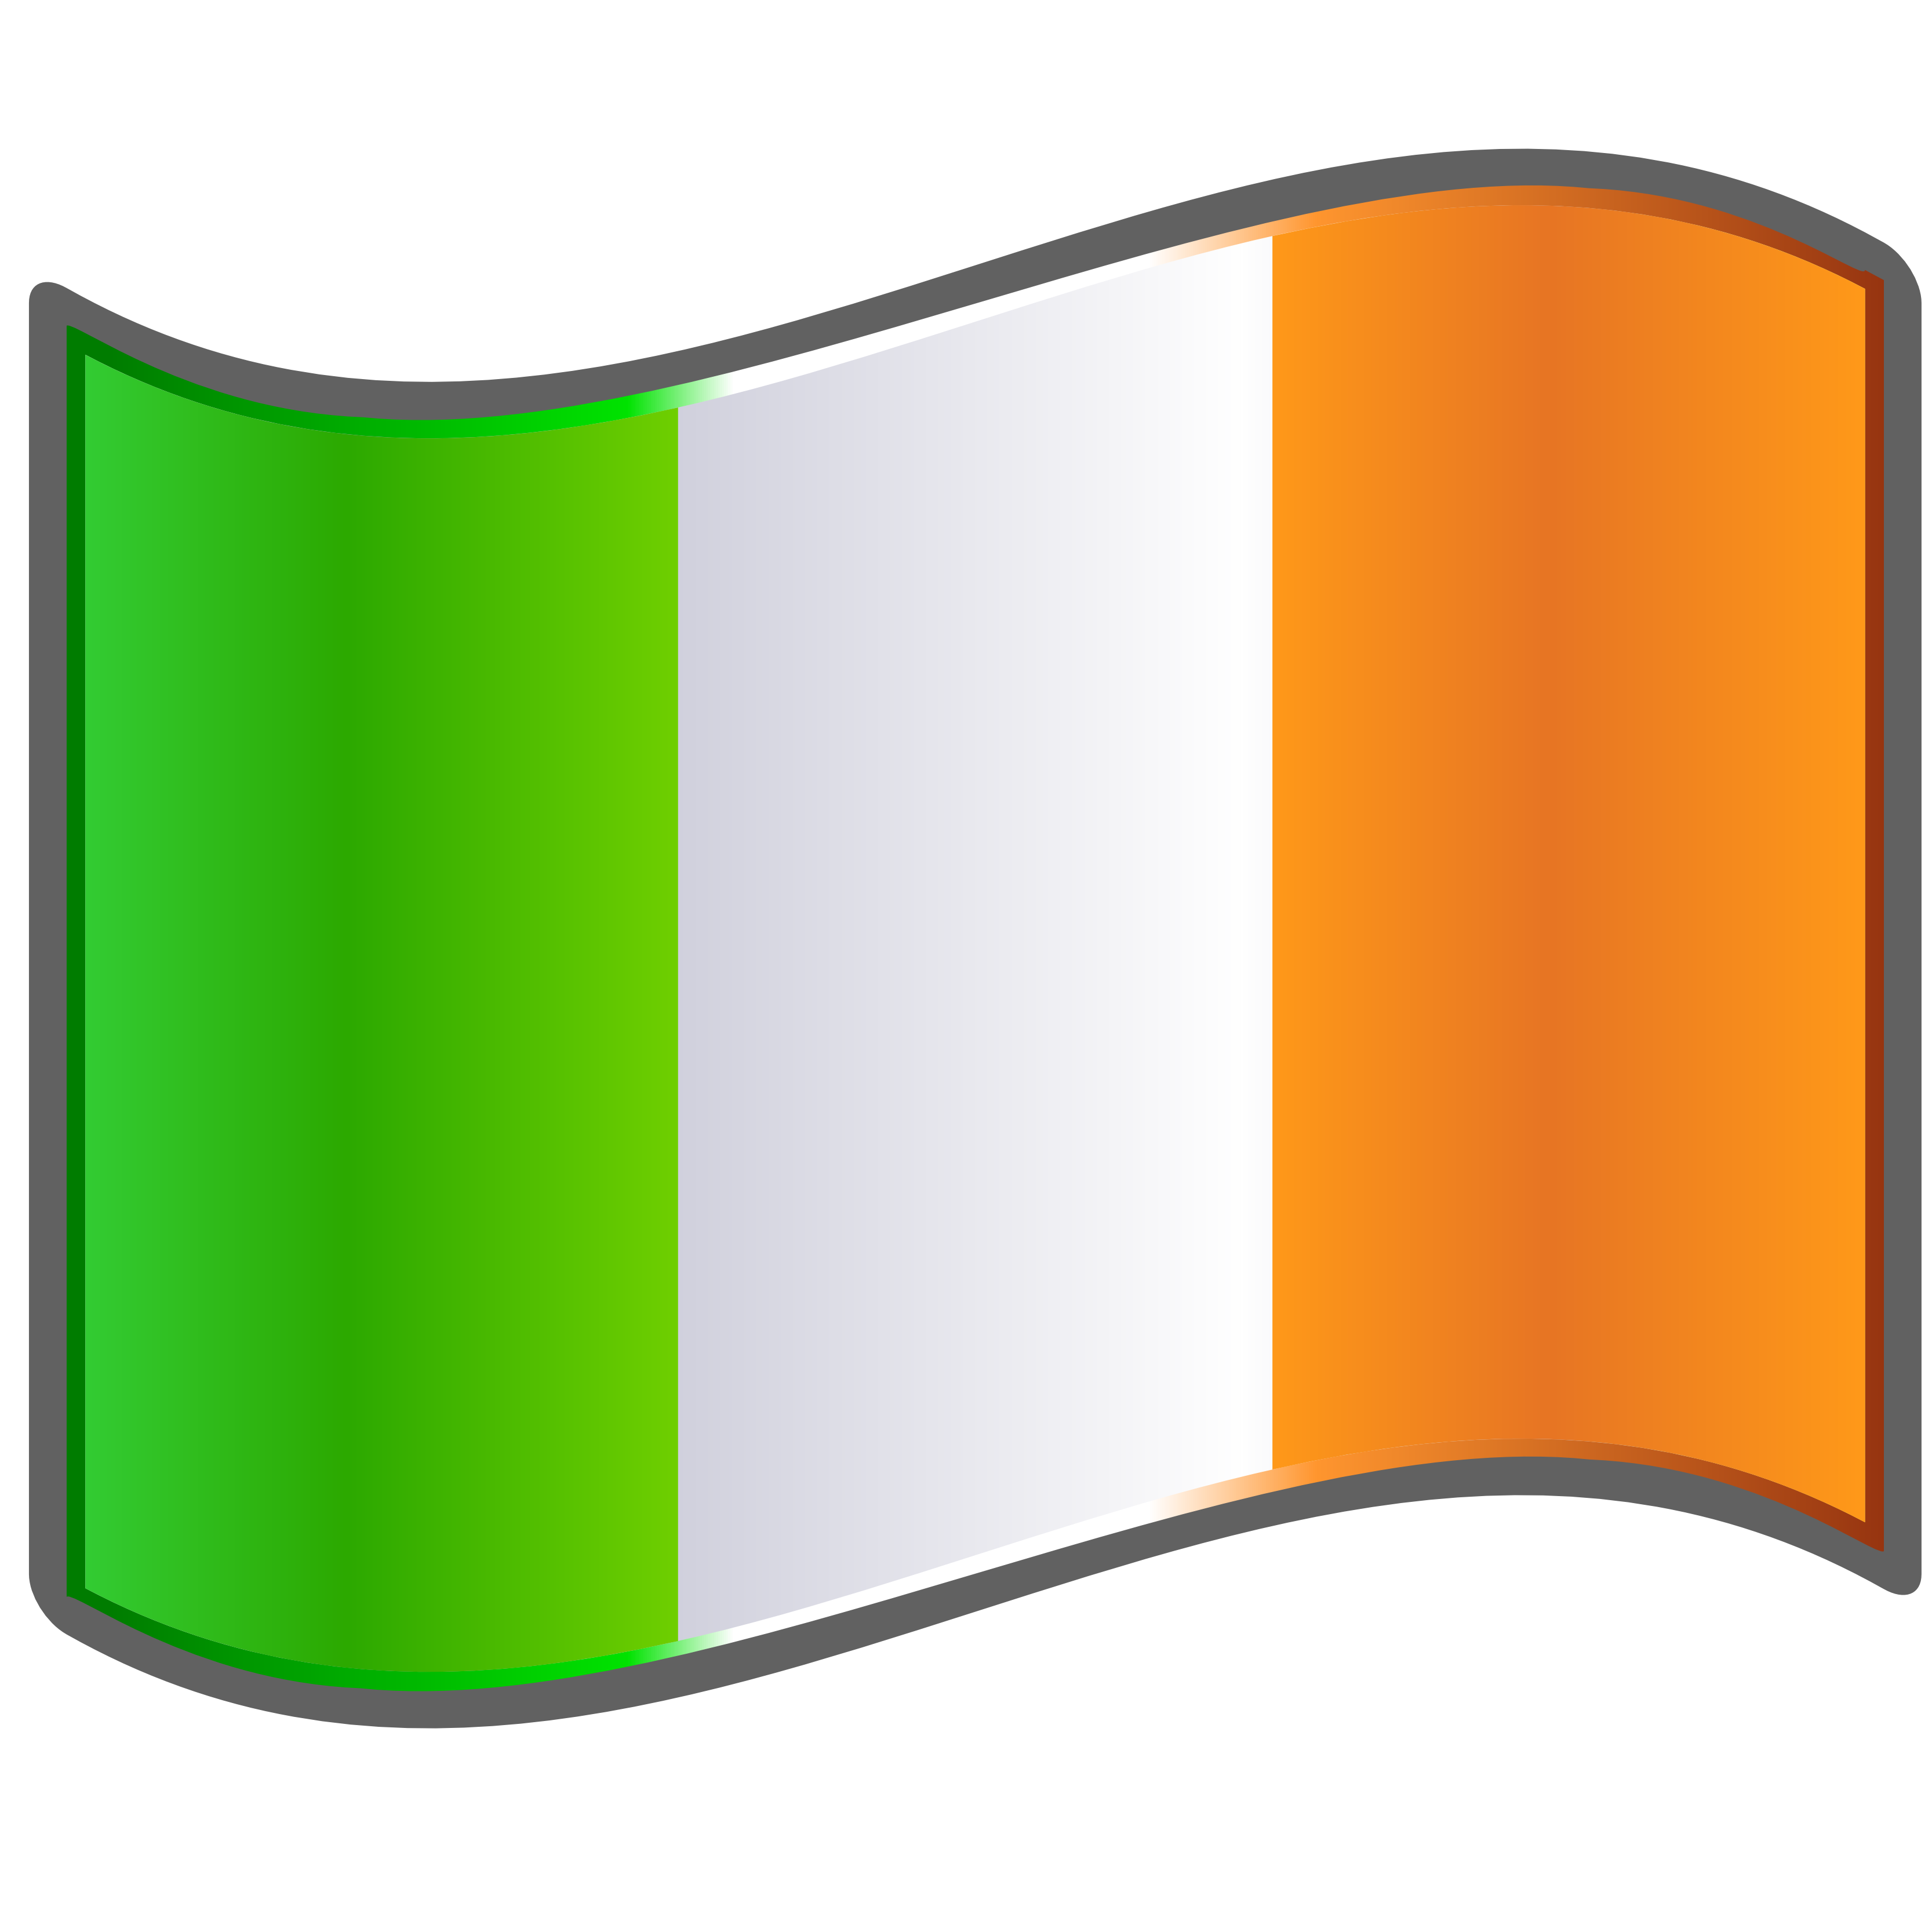 Free clipart ireland graphic freeuse download Free Irish Cliparts, Download Free Clip Art, Free Clip Art on ... graphic freeuse download